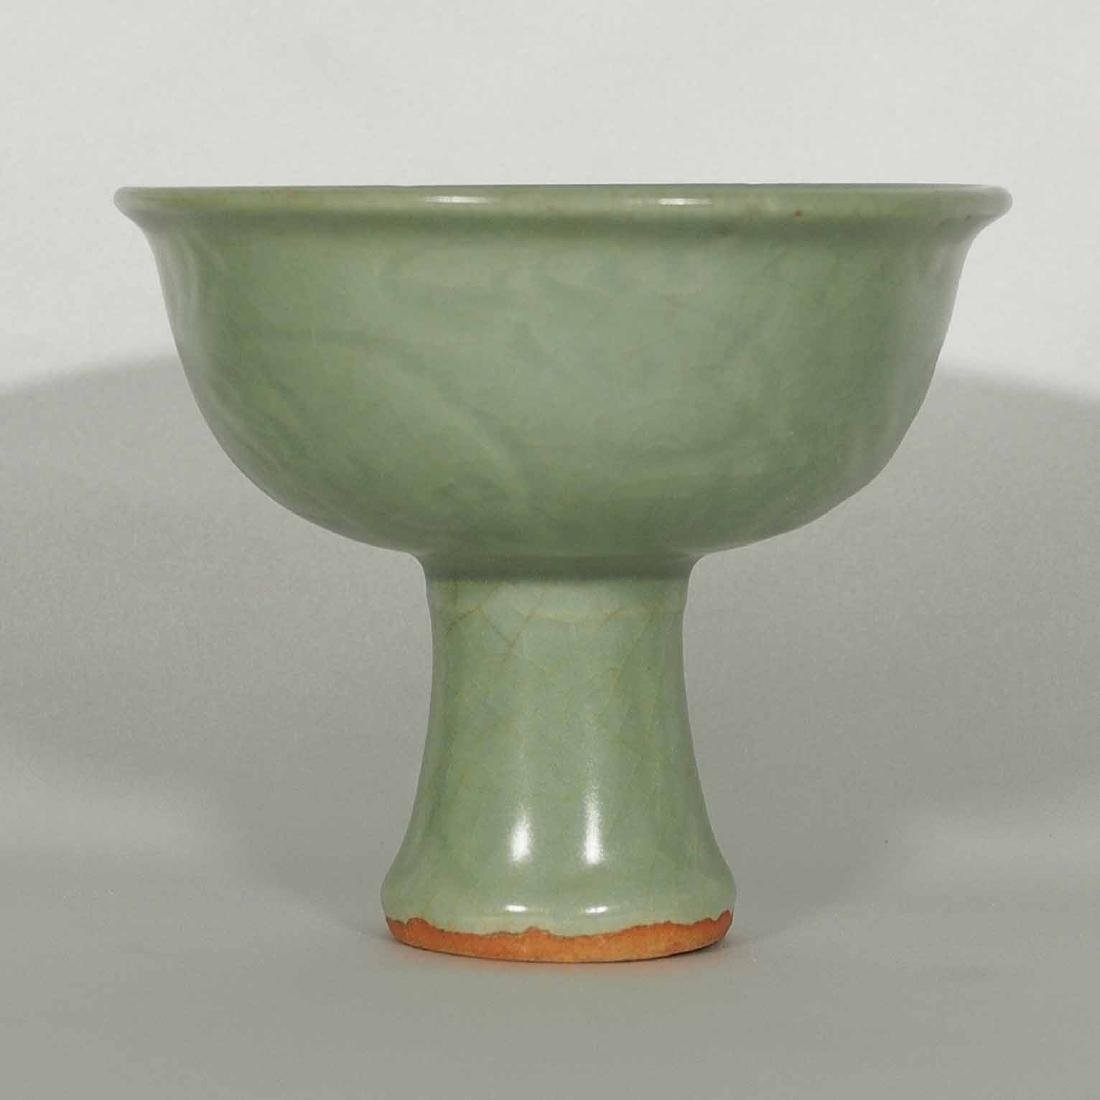 Longquan Stemcup with Incised Design, Yuan-early Ming